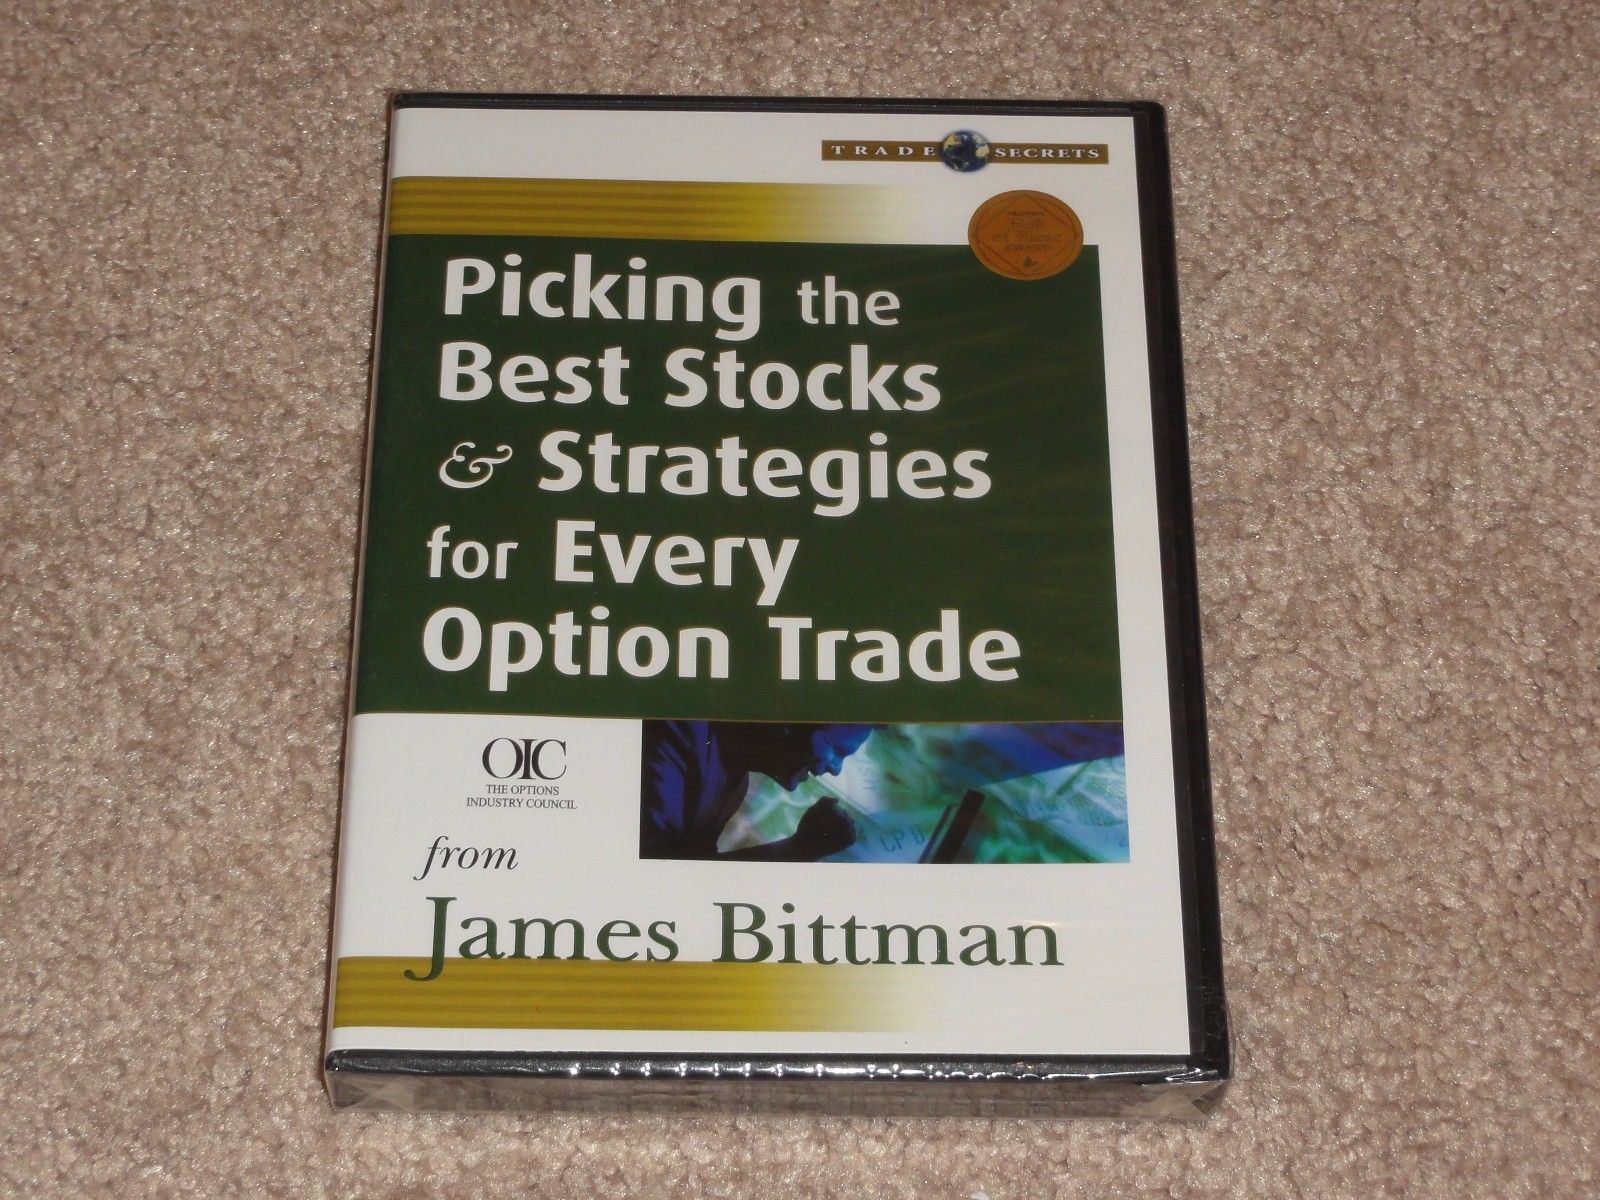 James Bittman Picking the Best Stocks DVD simpler options online trading academy